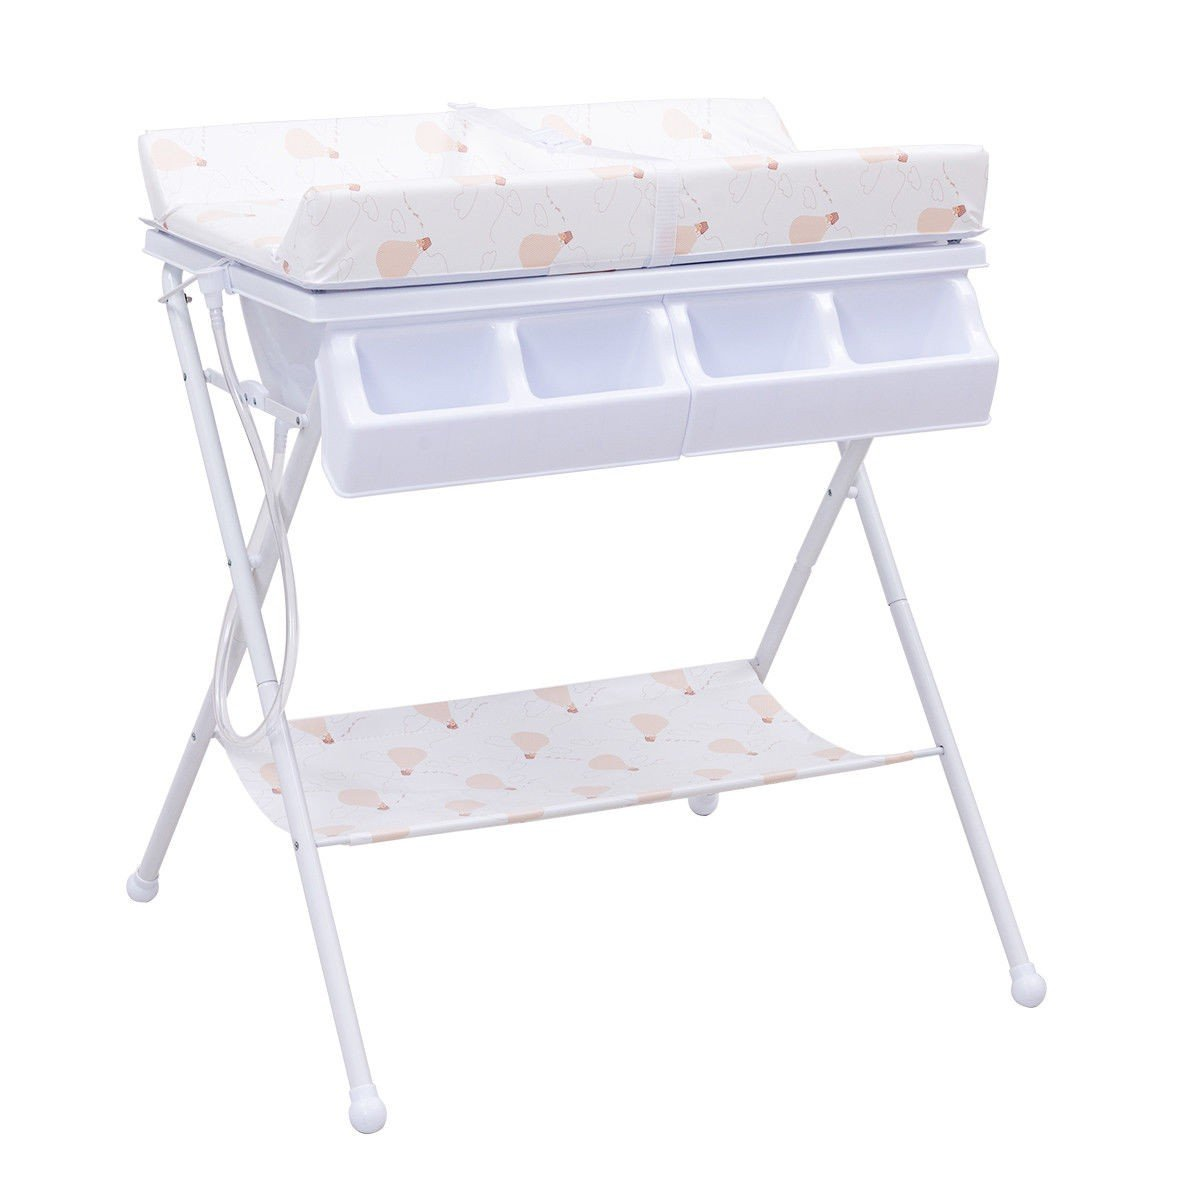 MD Group Baby Changing Table Foldable Steel White Cushioned Infant Bath Diaper Storage